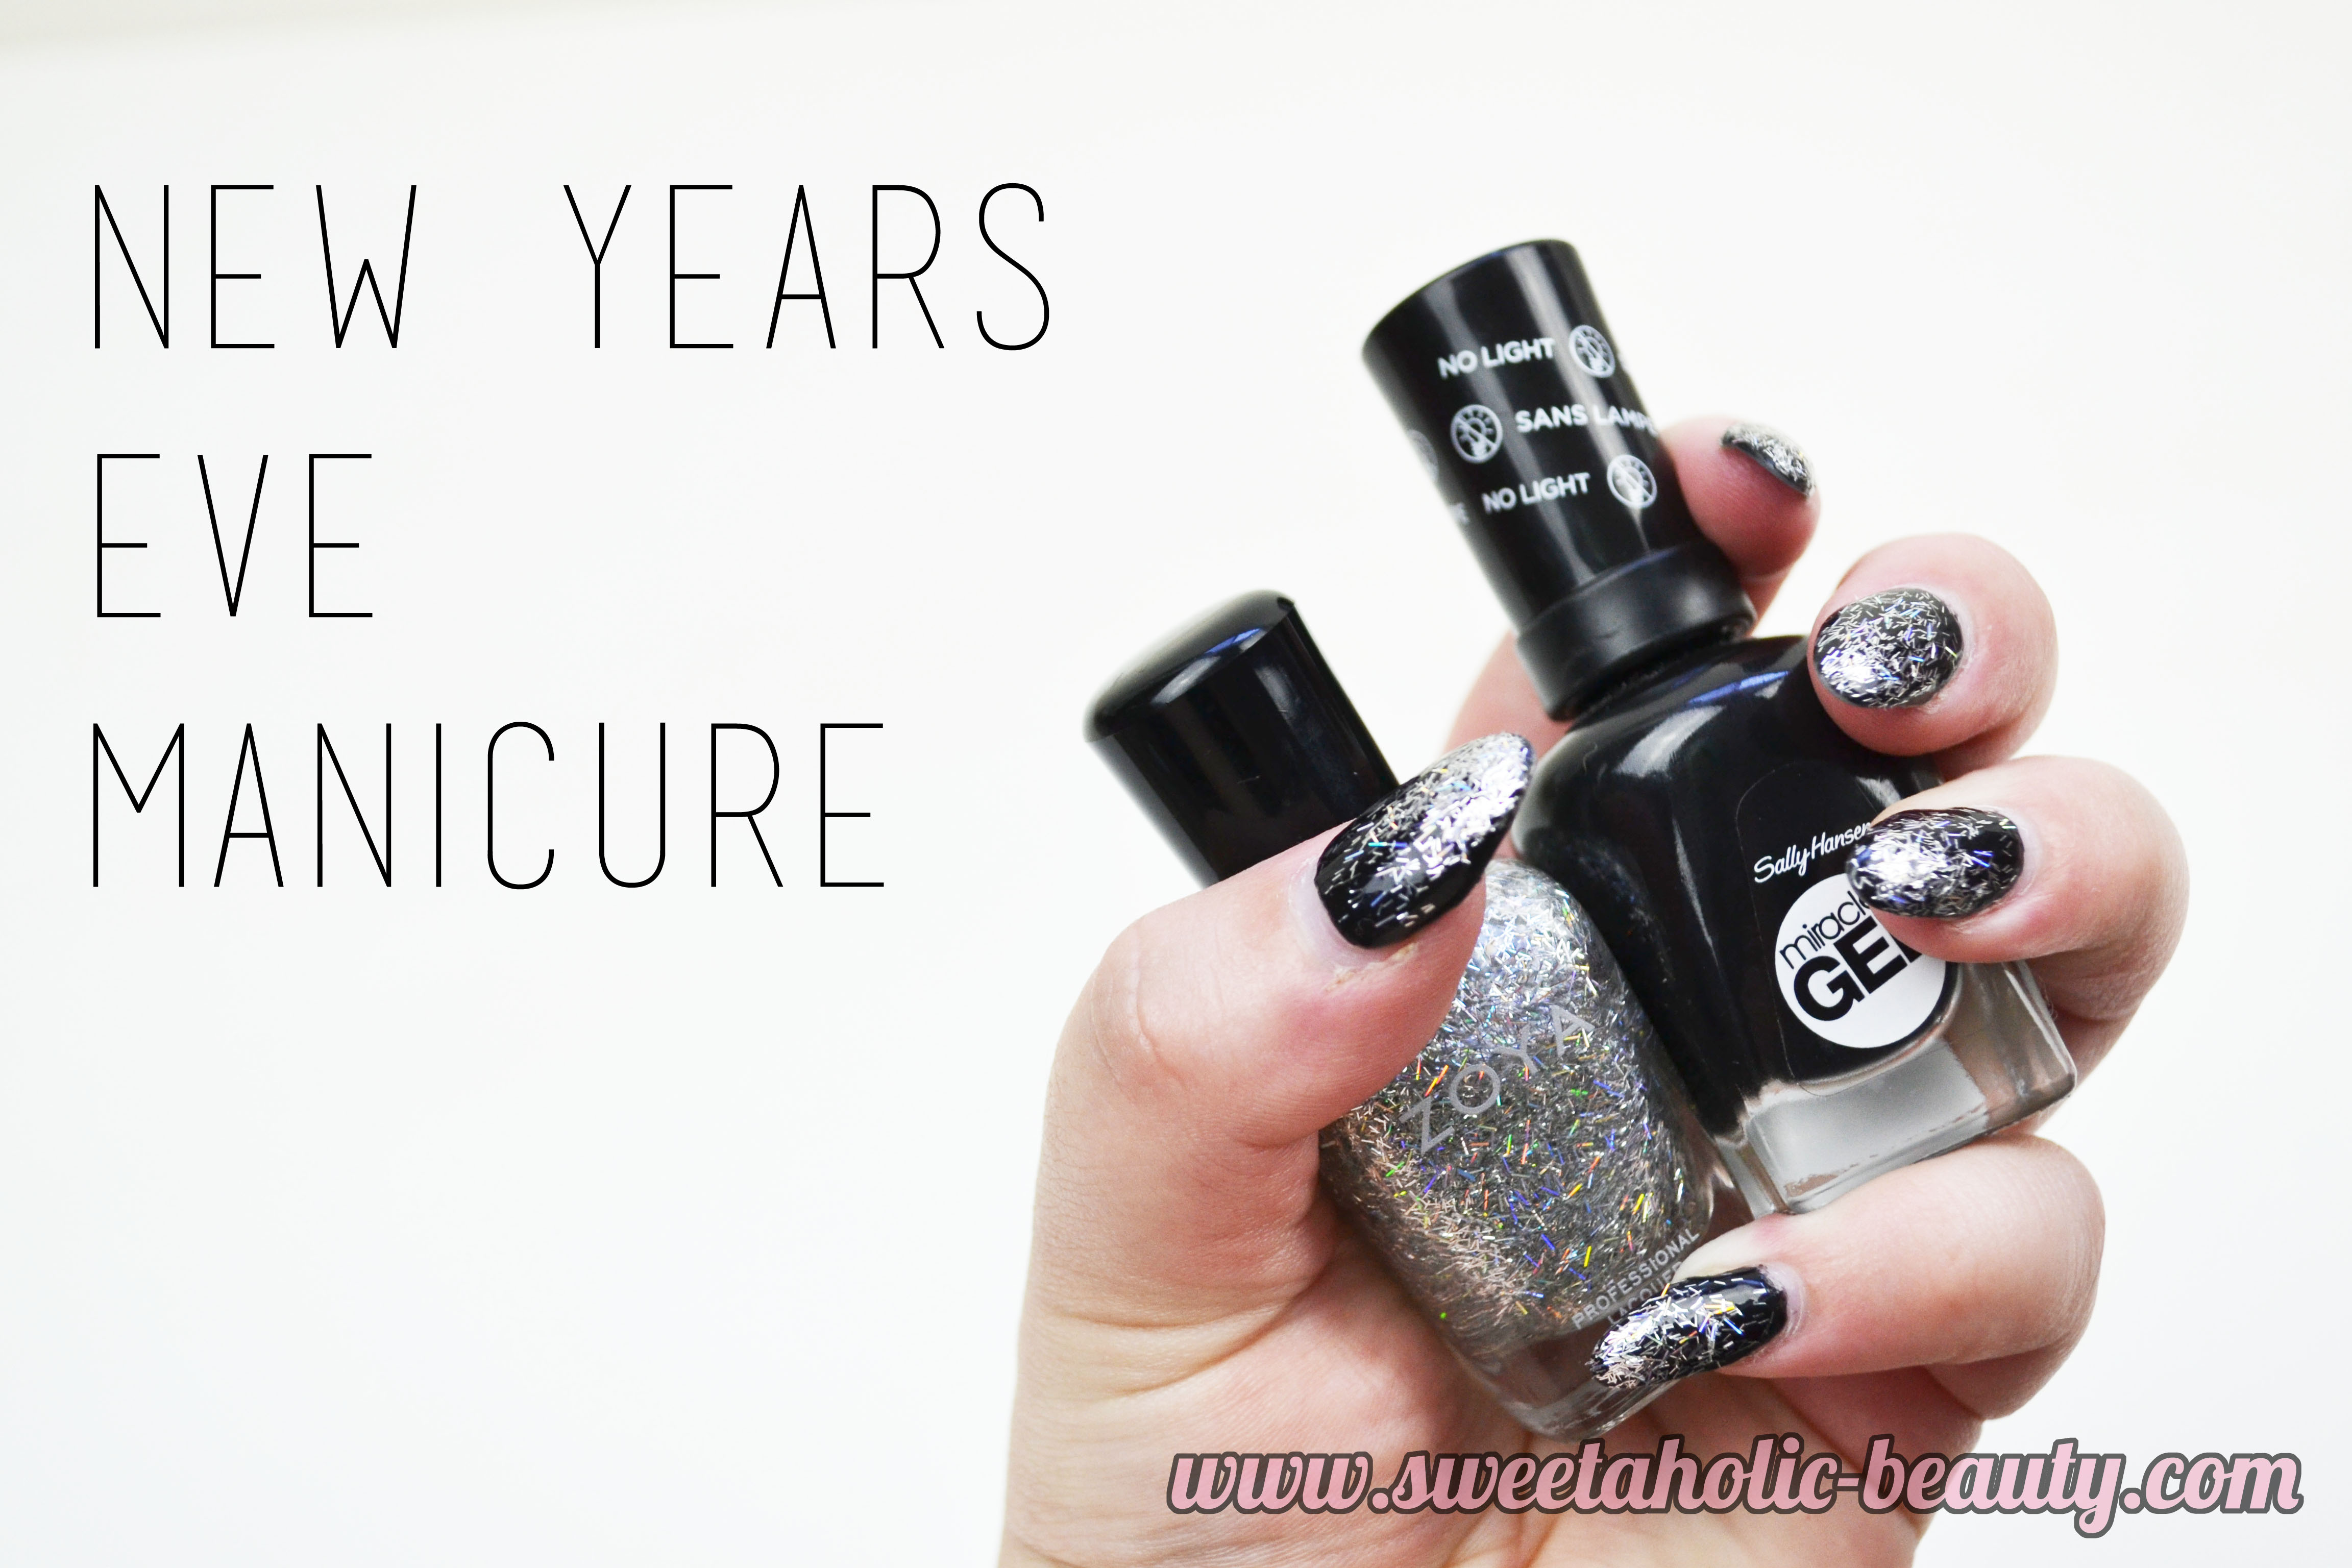 New Years Eve Manicure - Sweetaholic Beauty